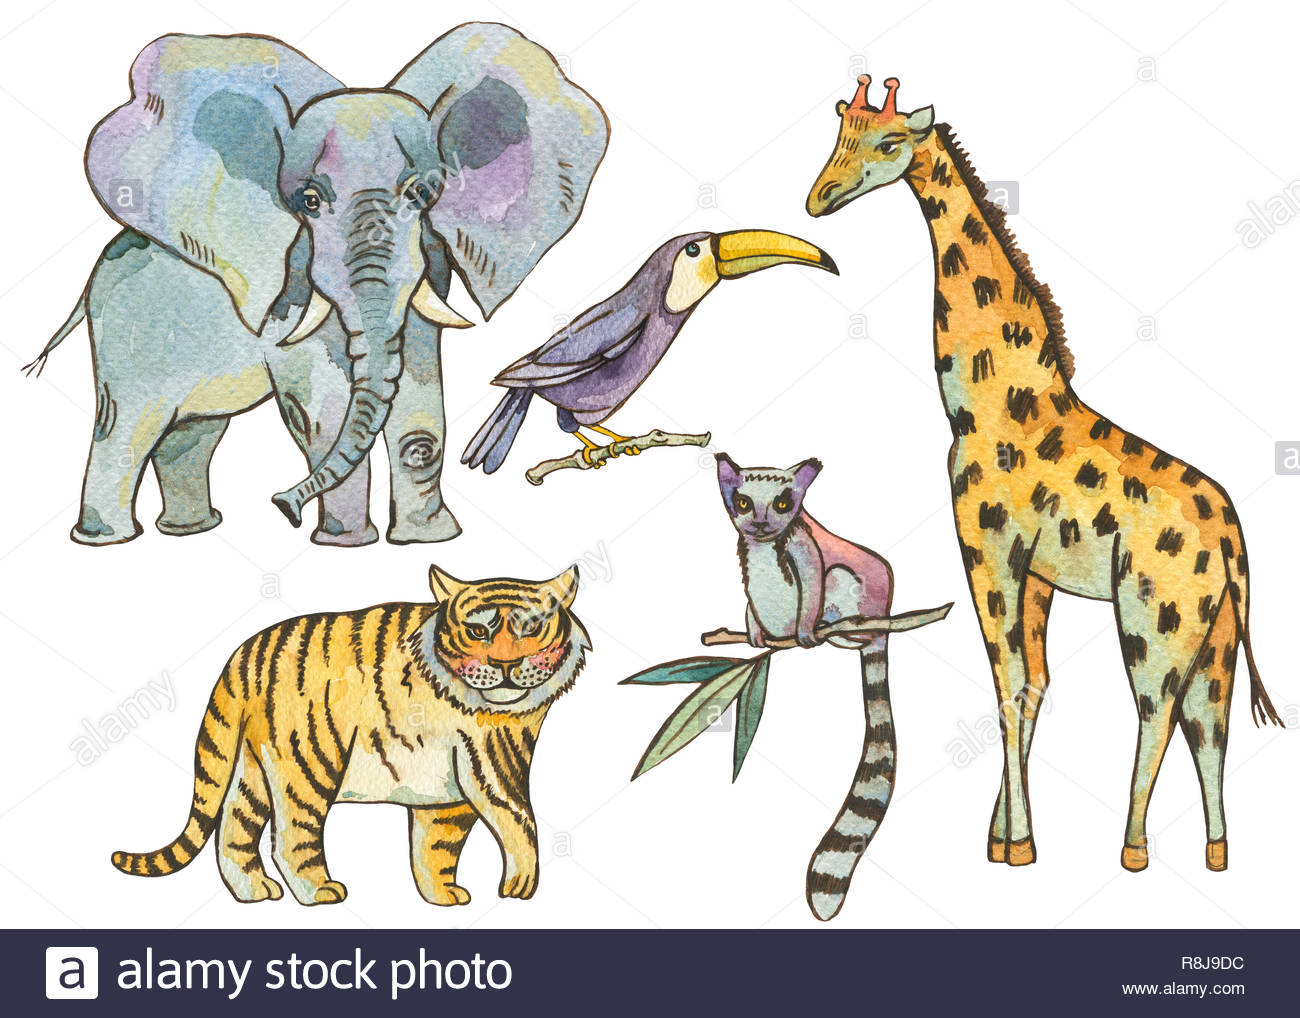 Ensemble D'animaux De La Jungle À L'aquarelle, Des Éléments à Animaux De La Jungle Maternelle